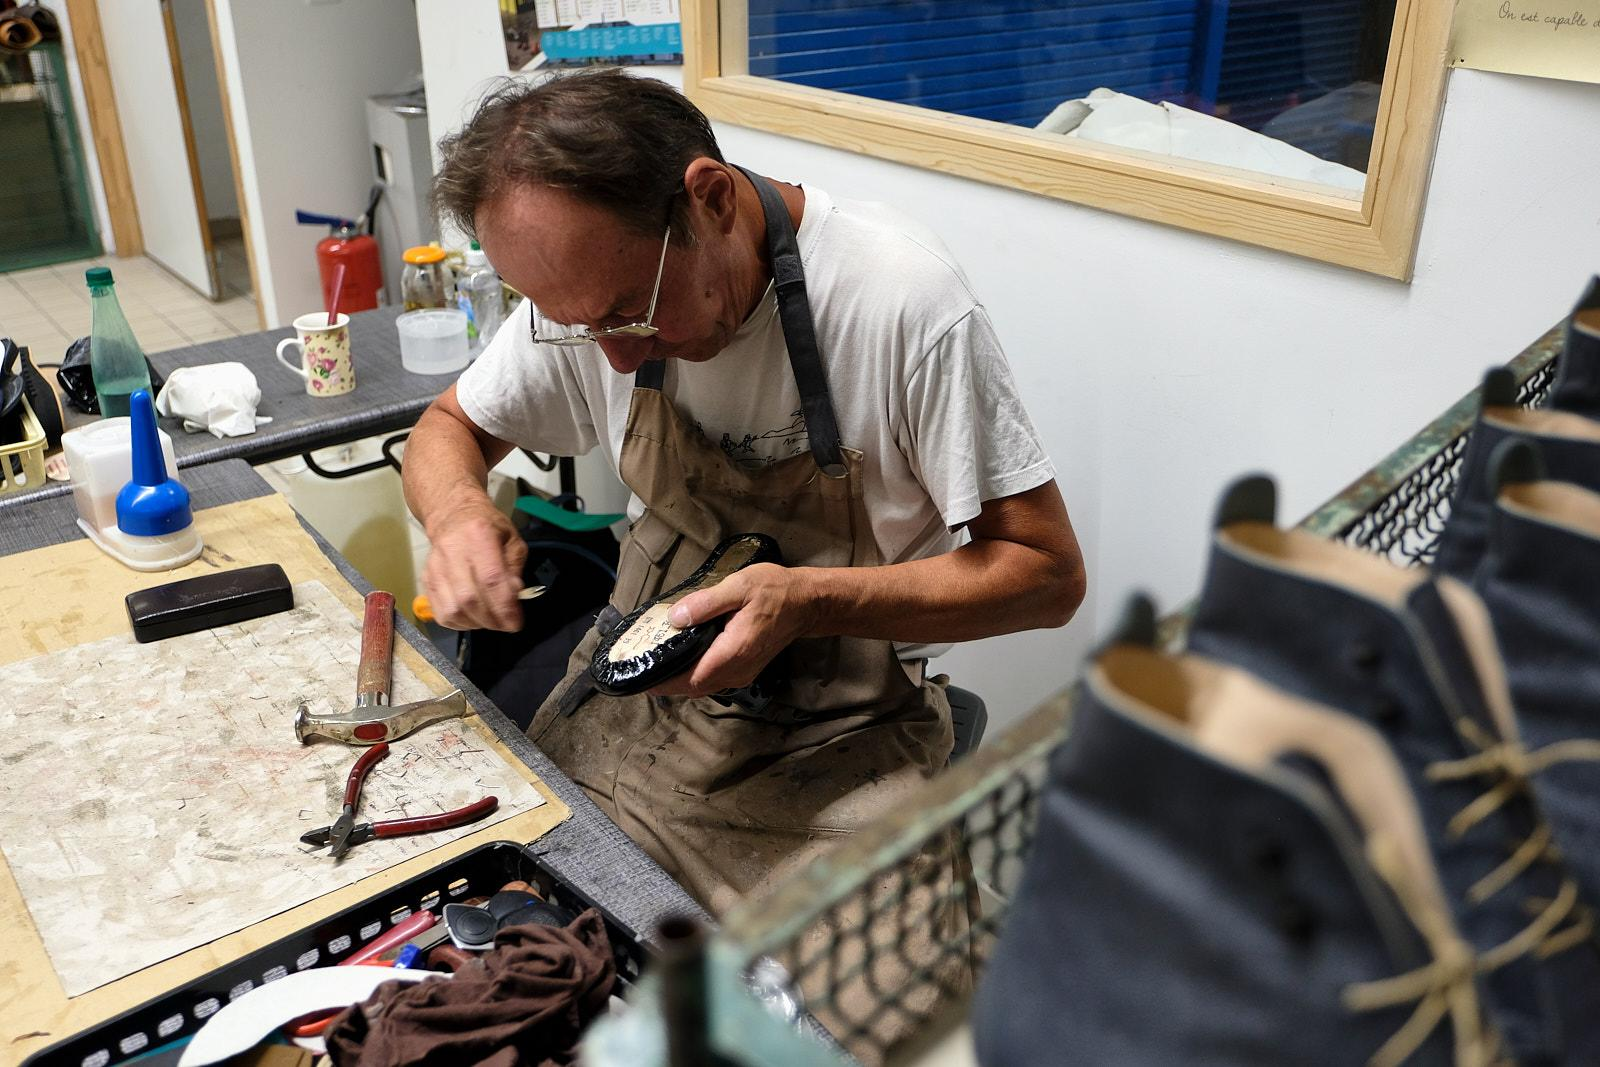 Bernard refused early retirement after 39 years in the industry to pass on his knowledge to a younger generation of shoemakers.